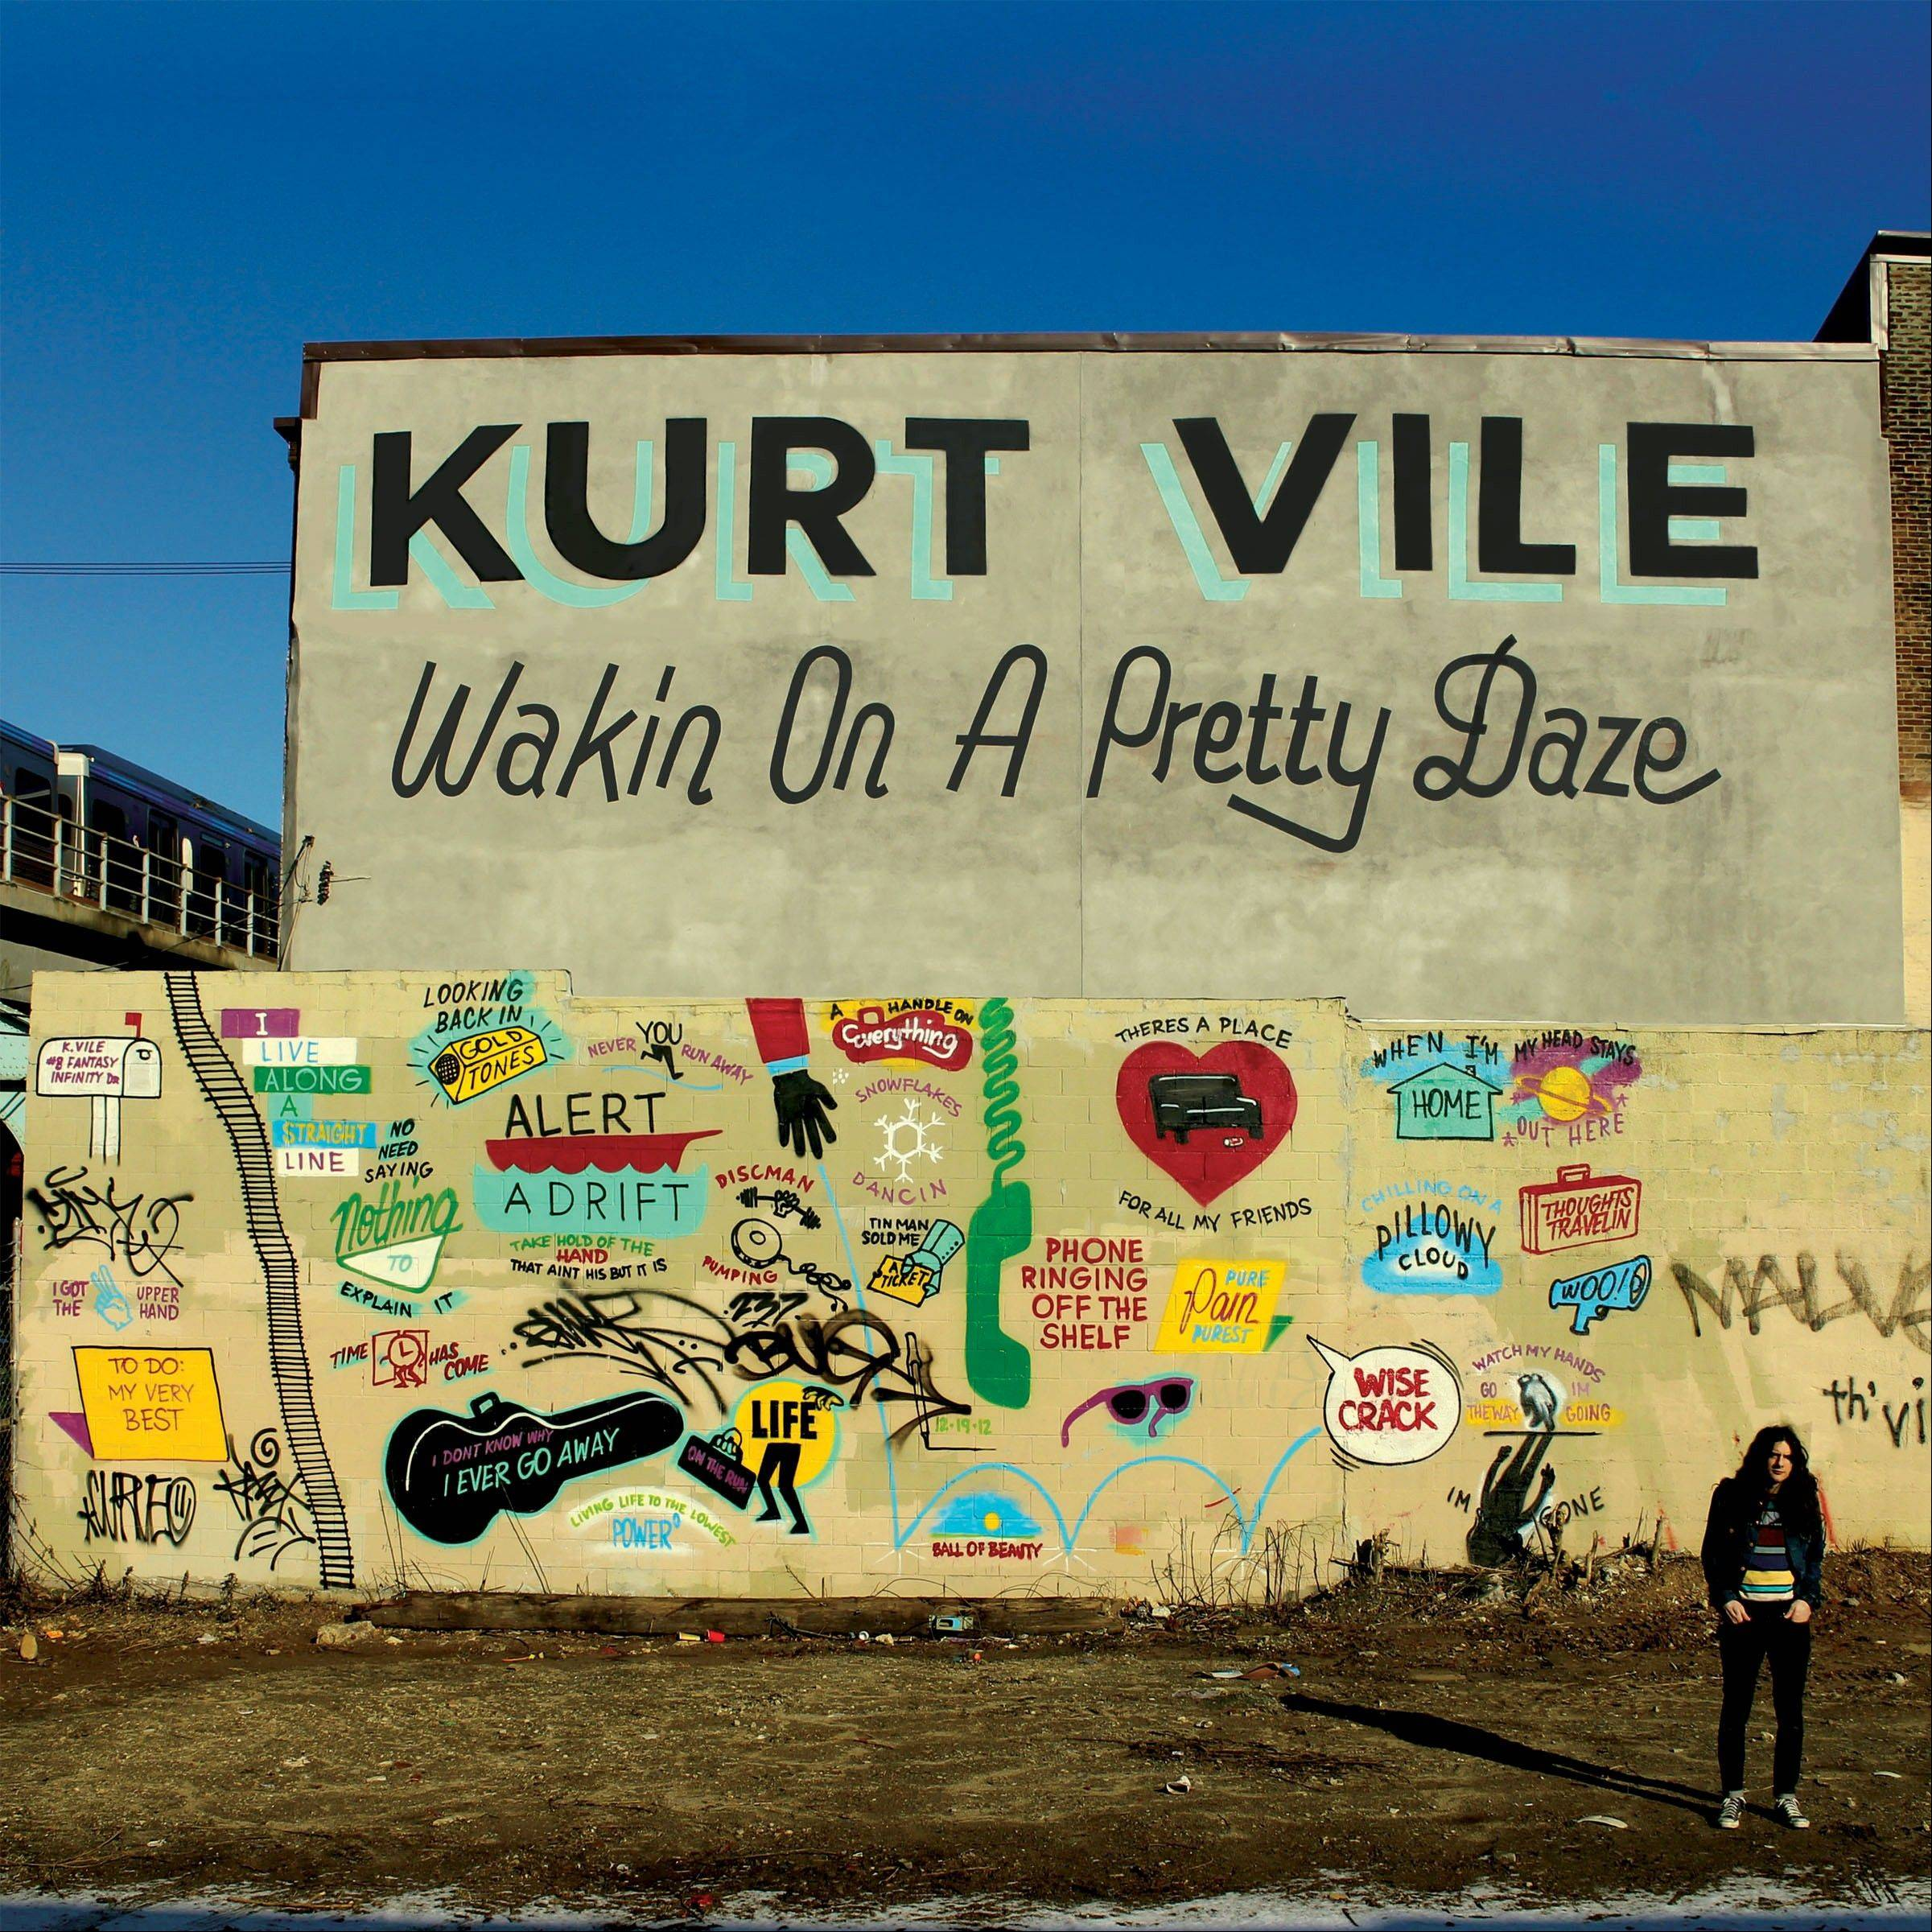 """Wakin on a Pretty Daze"" by Kurt Vile"